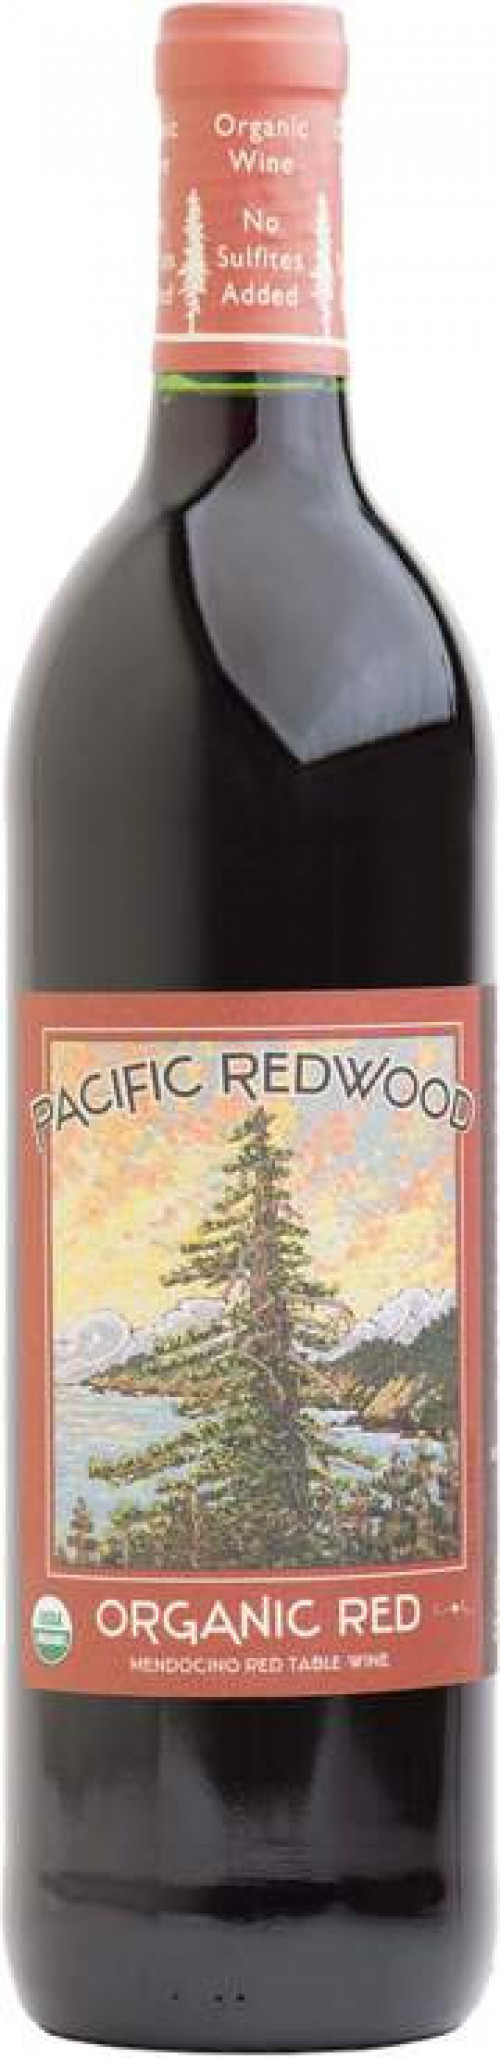 Pacific Redwood Organic Red Blend750ml